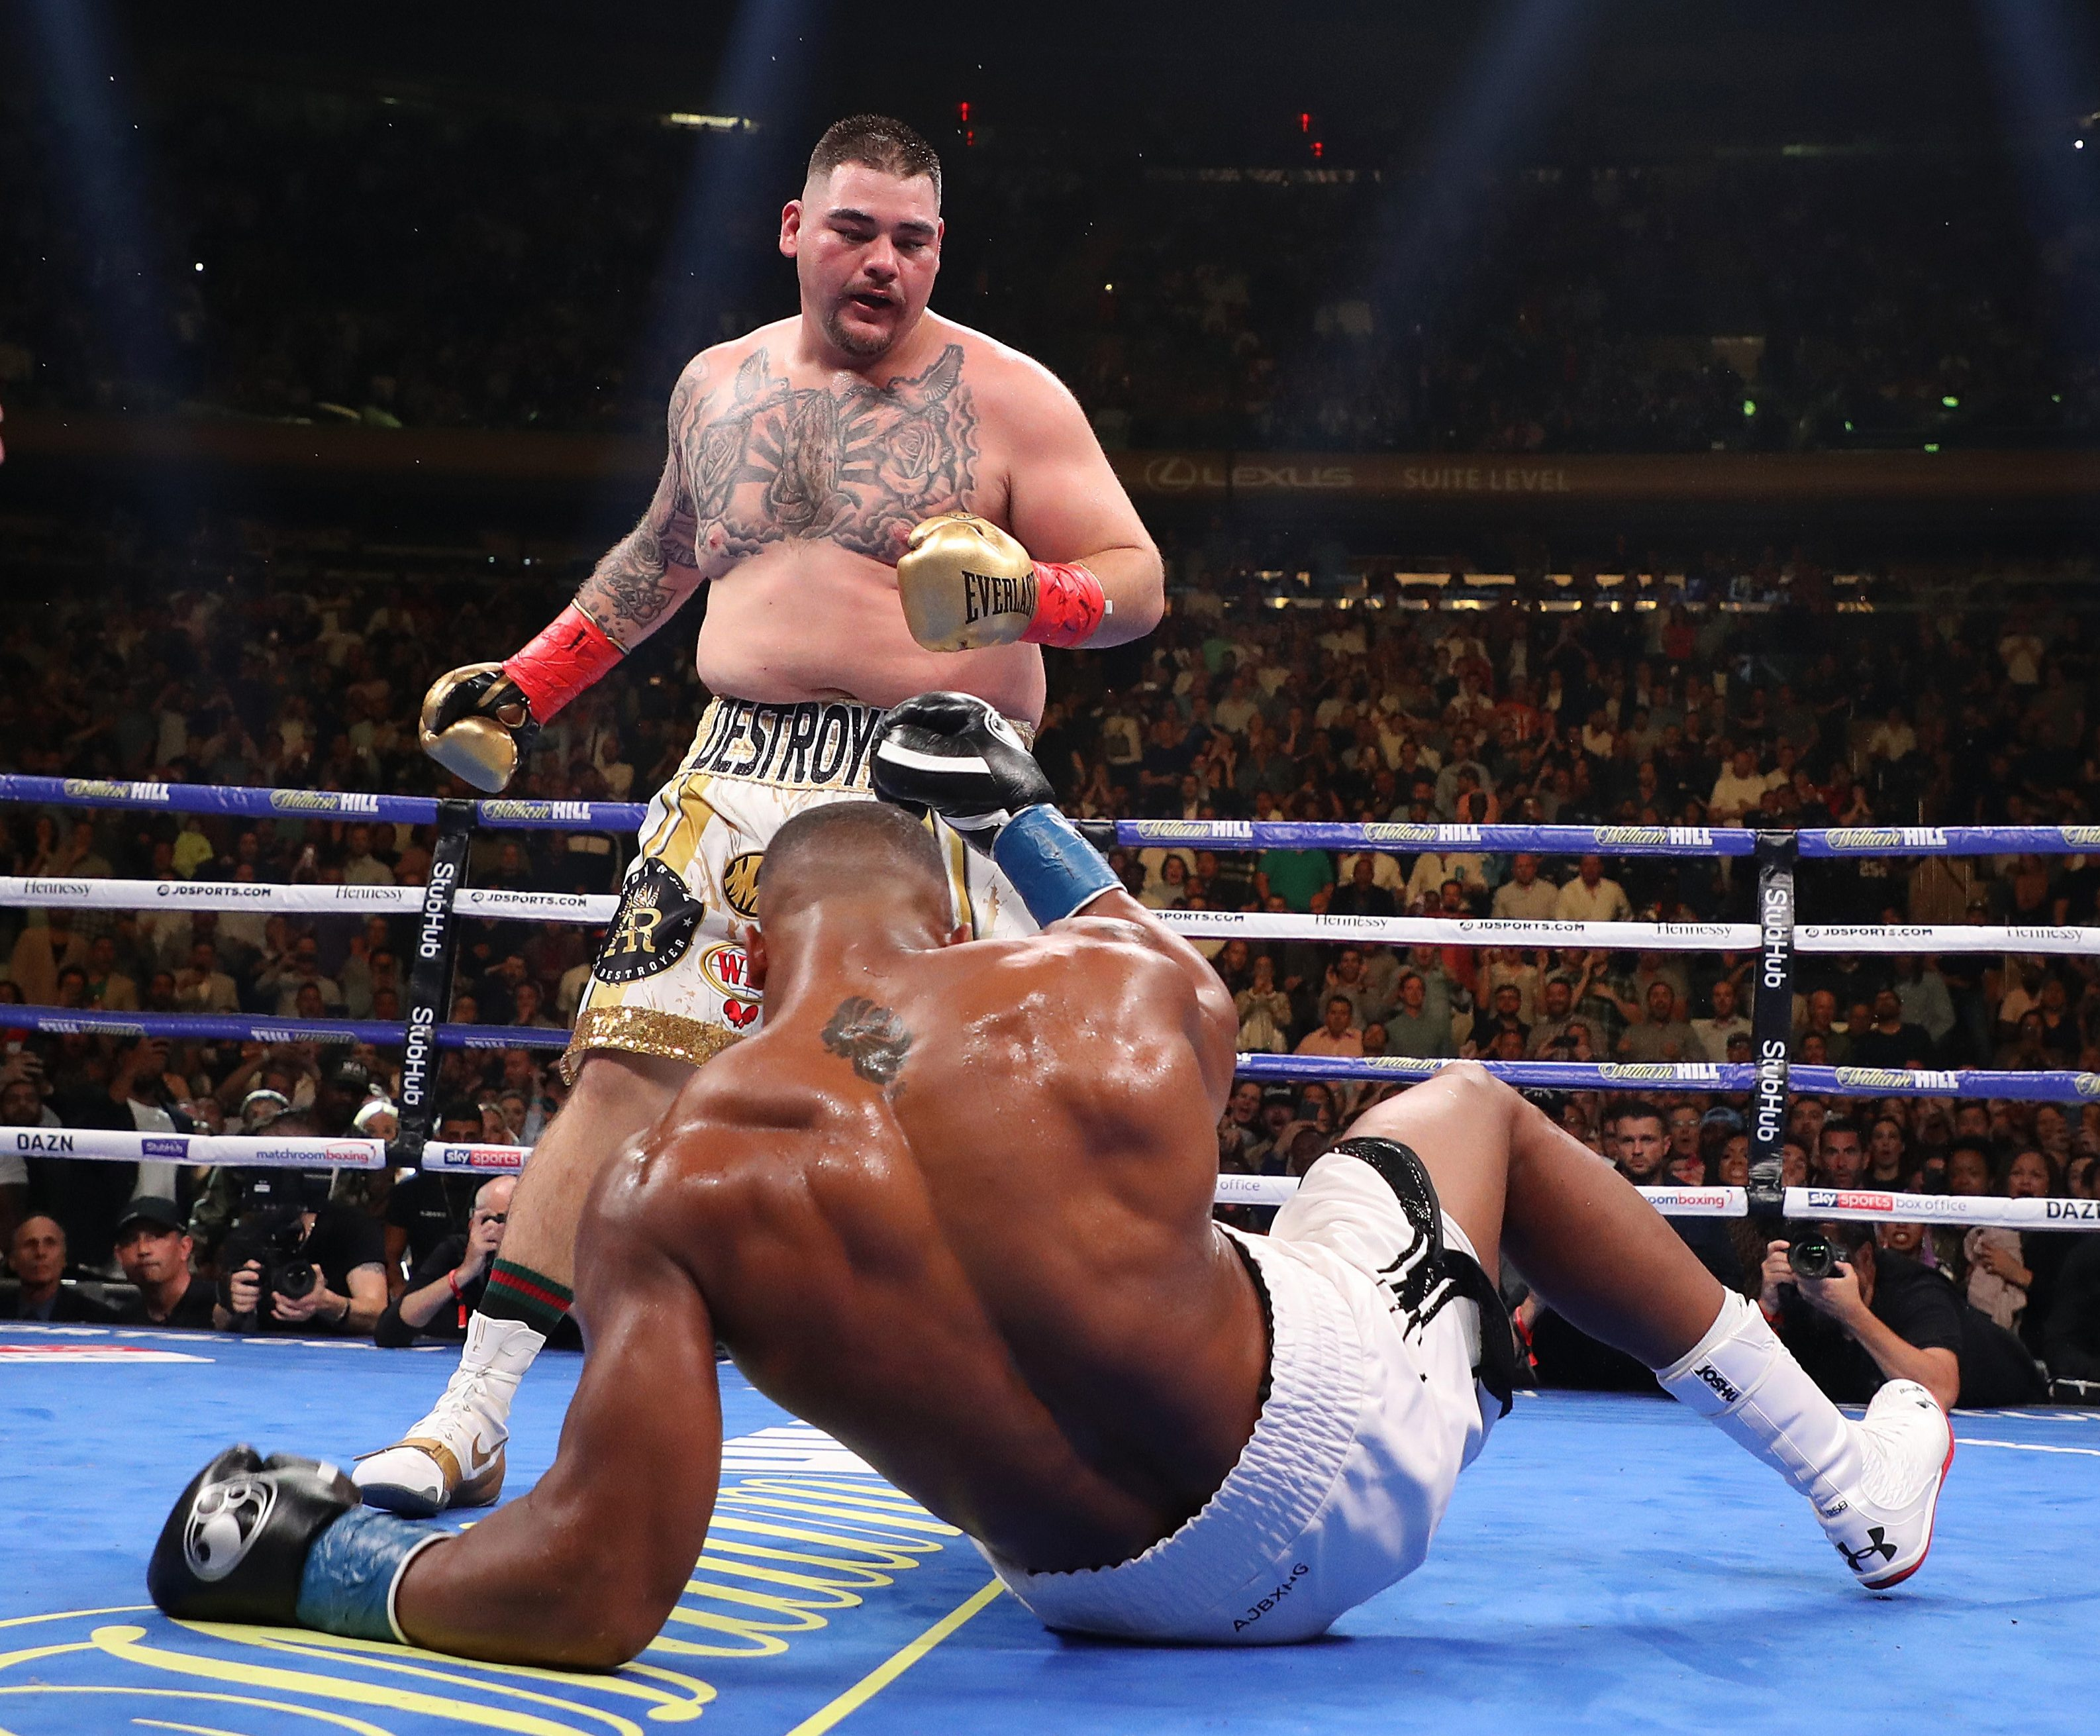 Ruiz ripped the unified titles from Joshua after convincing win in New York